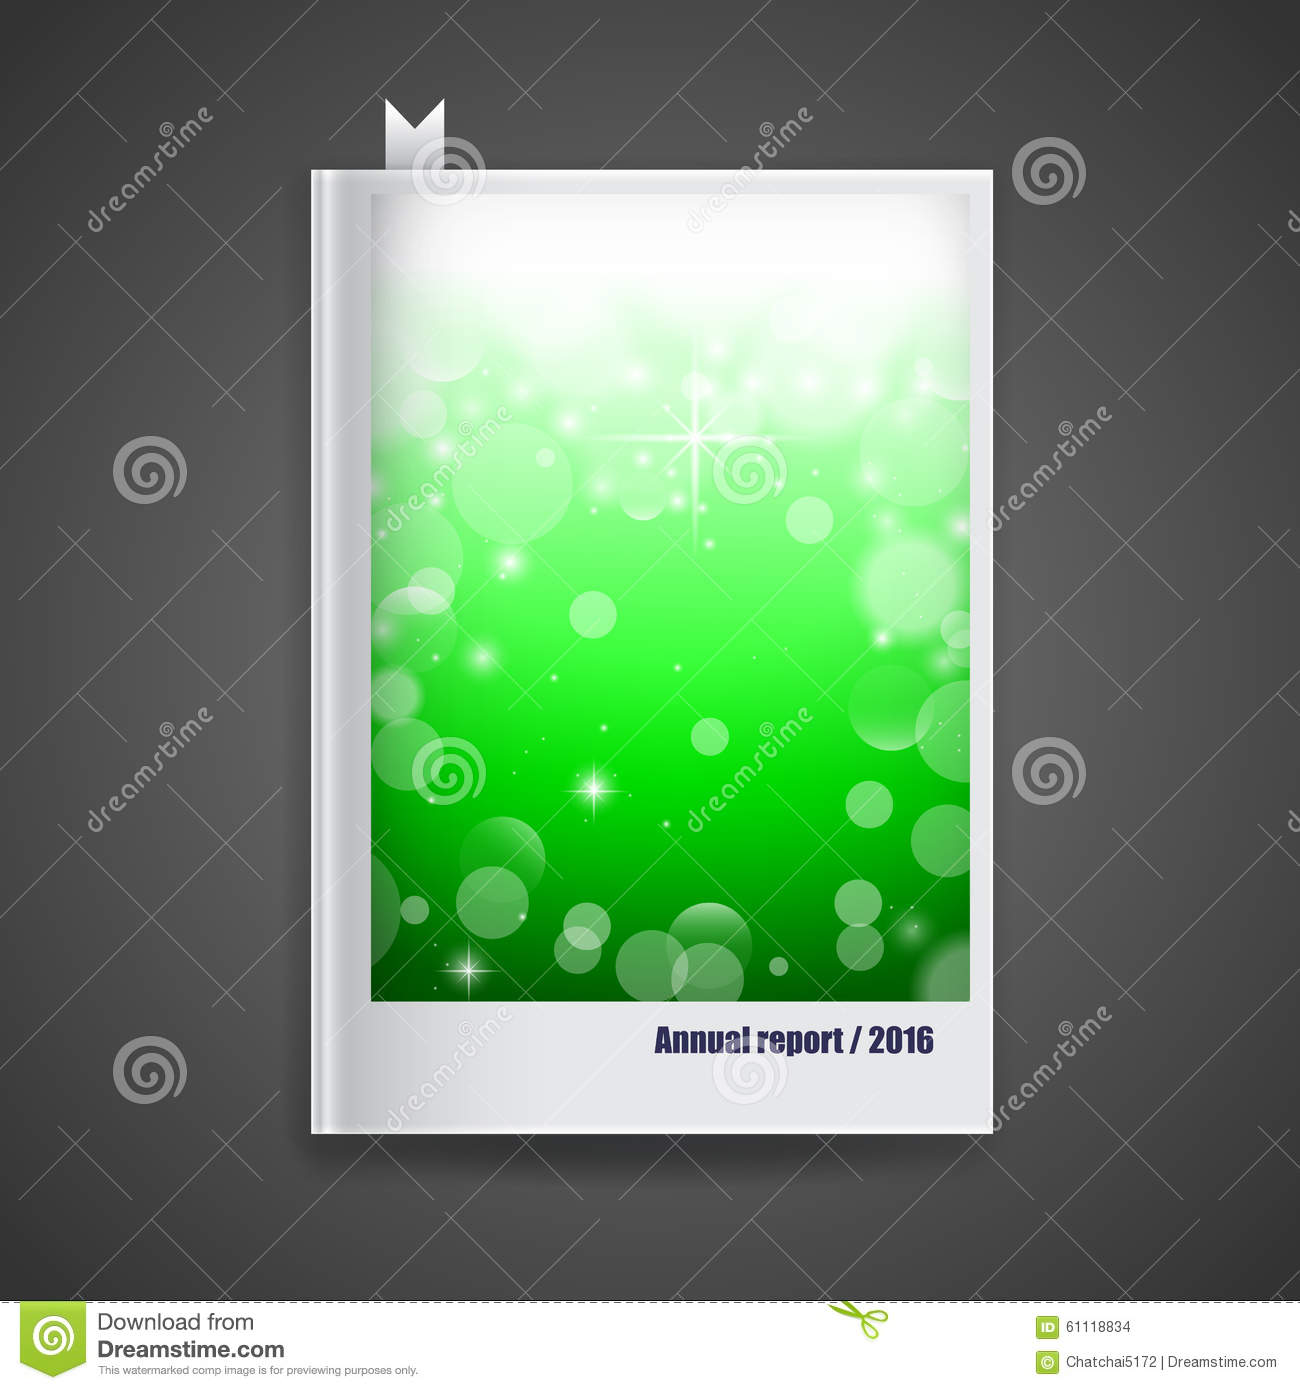 Cover Annual Report2016 Modern Vector Abstract Brochurereport Stock 6f167fdH